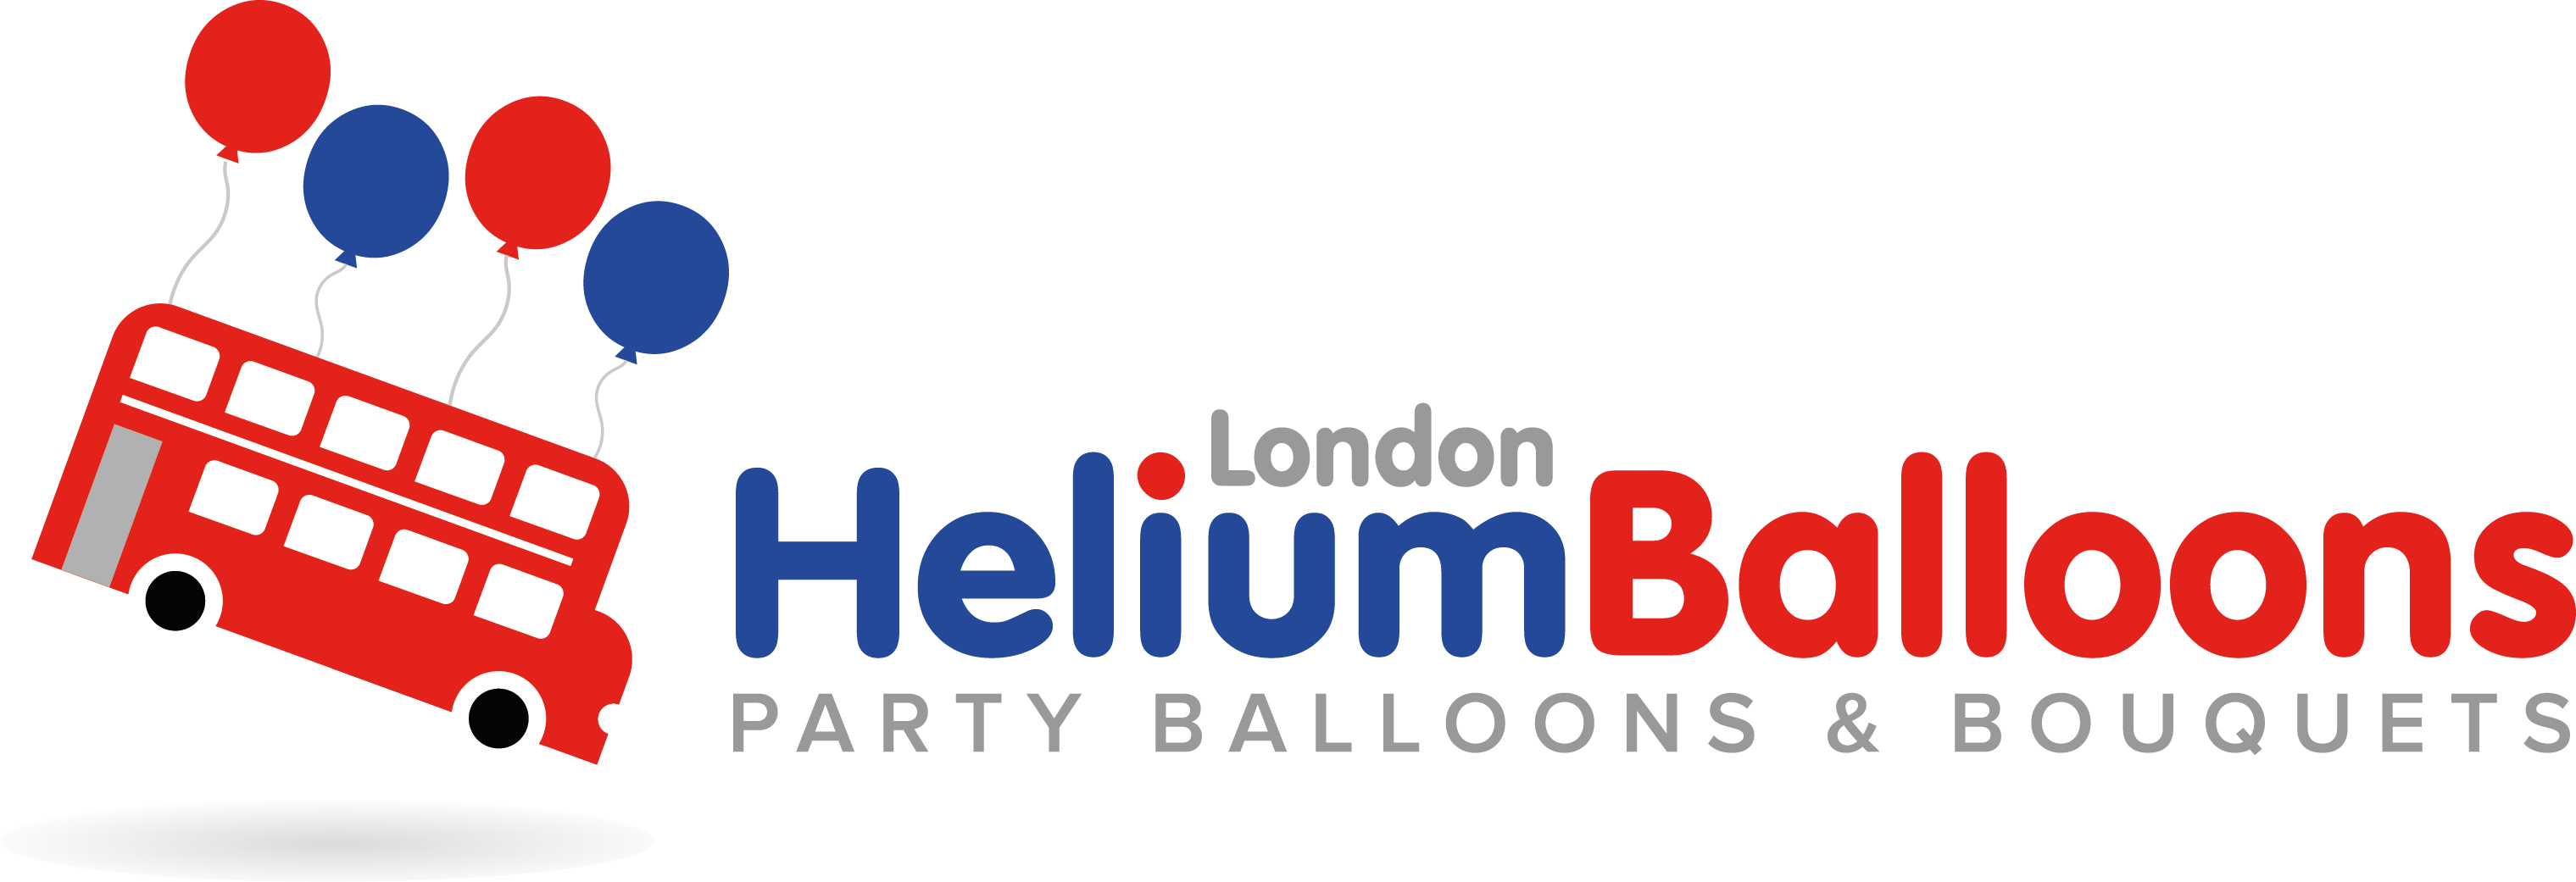 London Helium Balloons